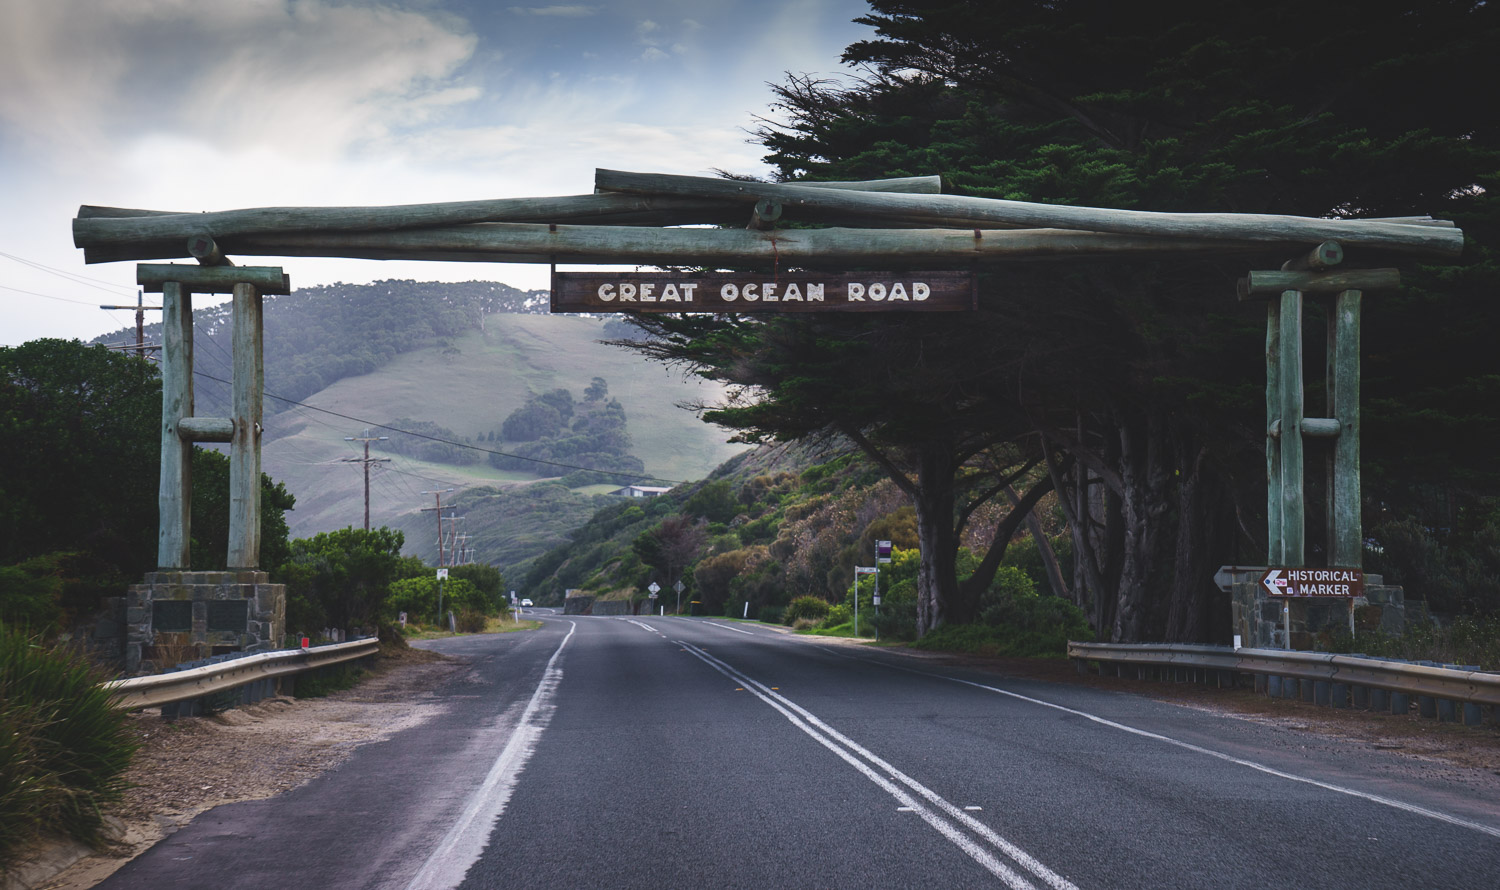 Official entry sign over the great ocean road